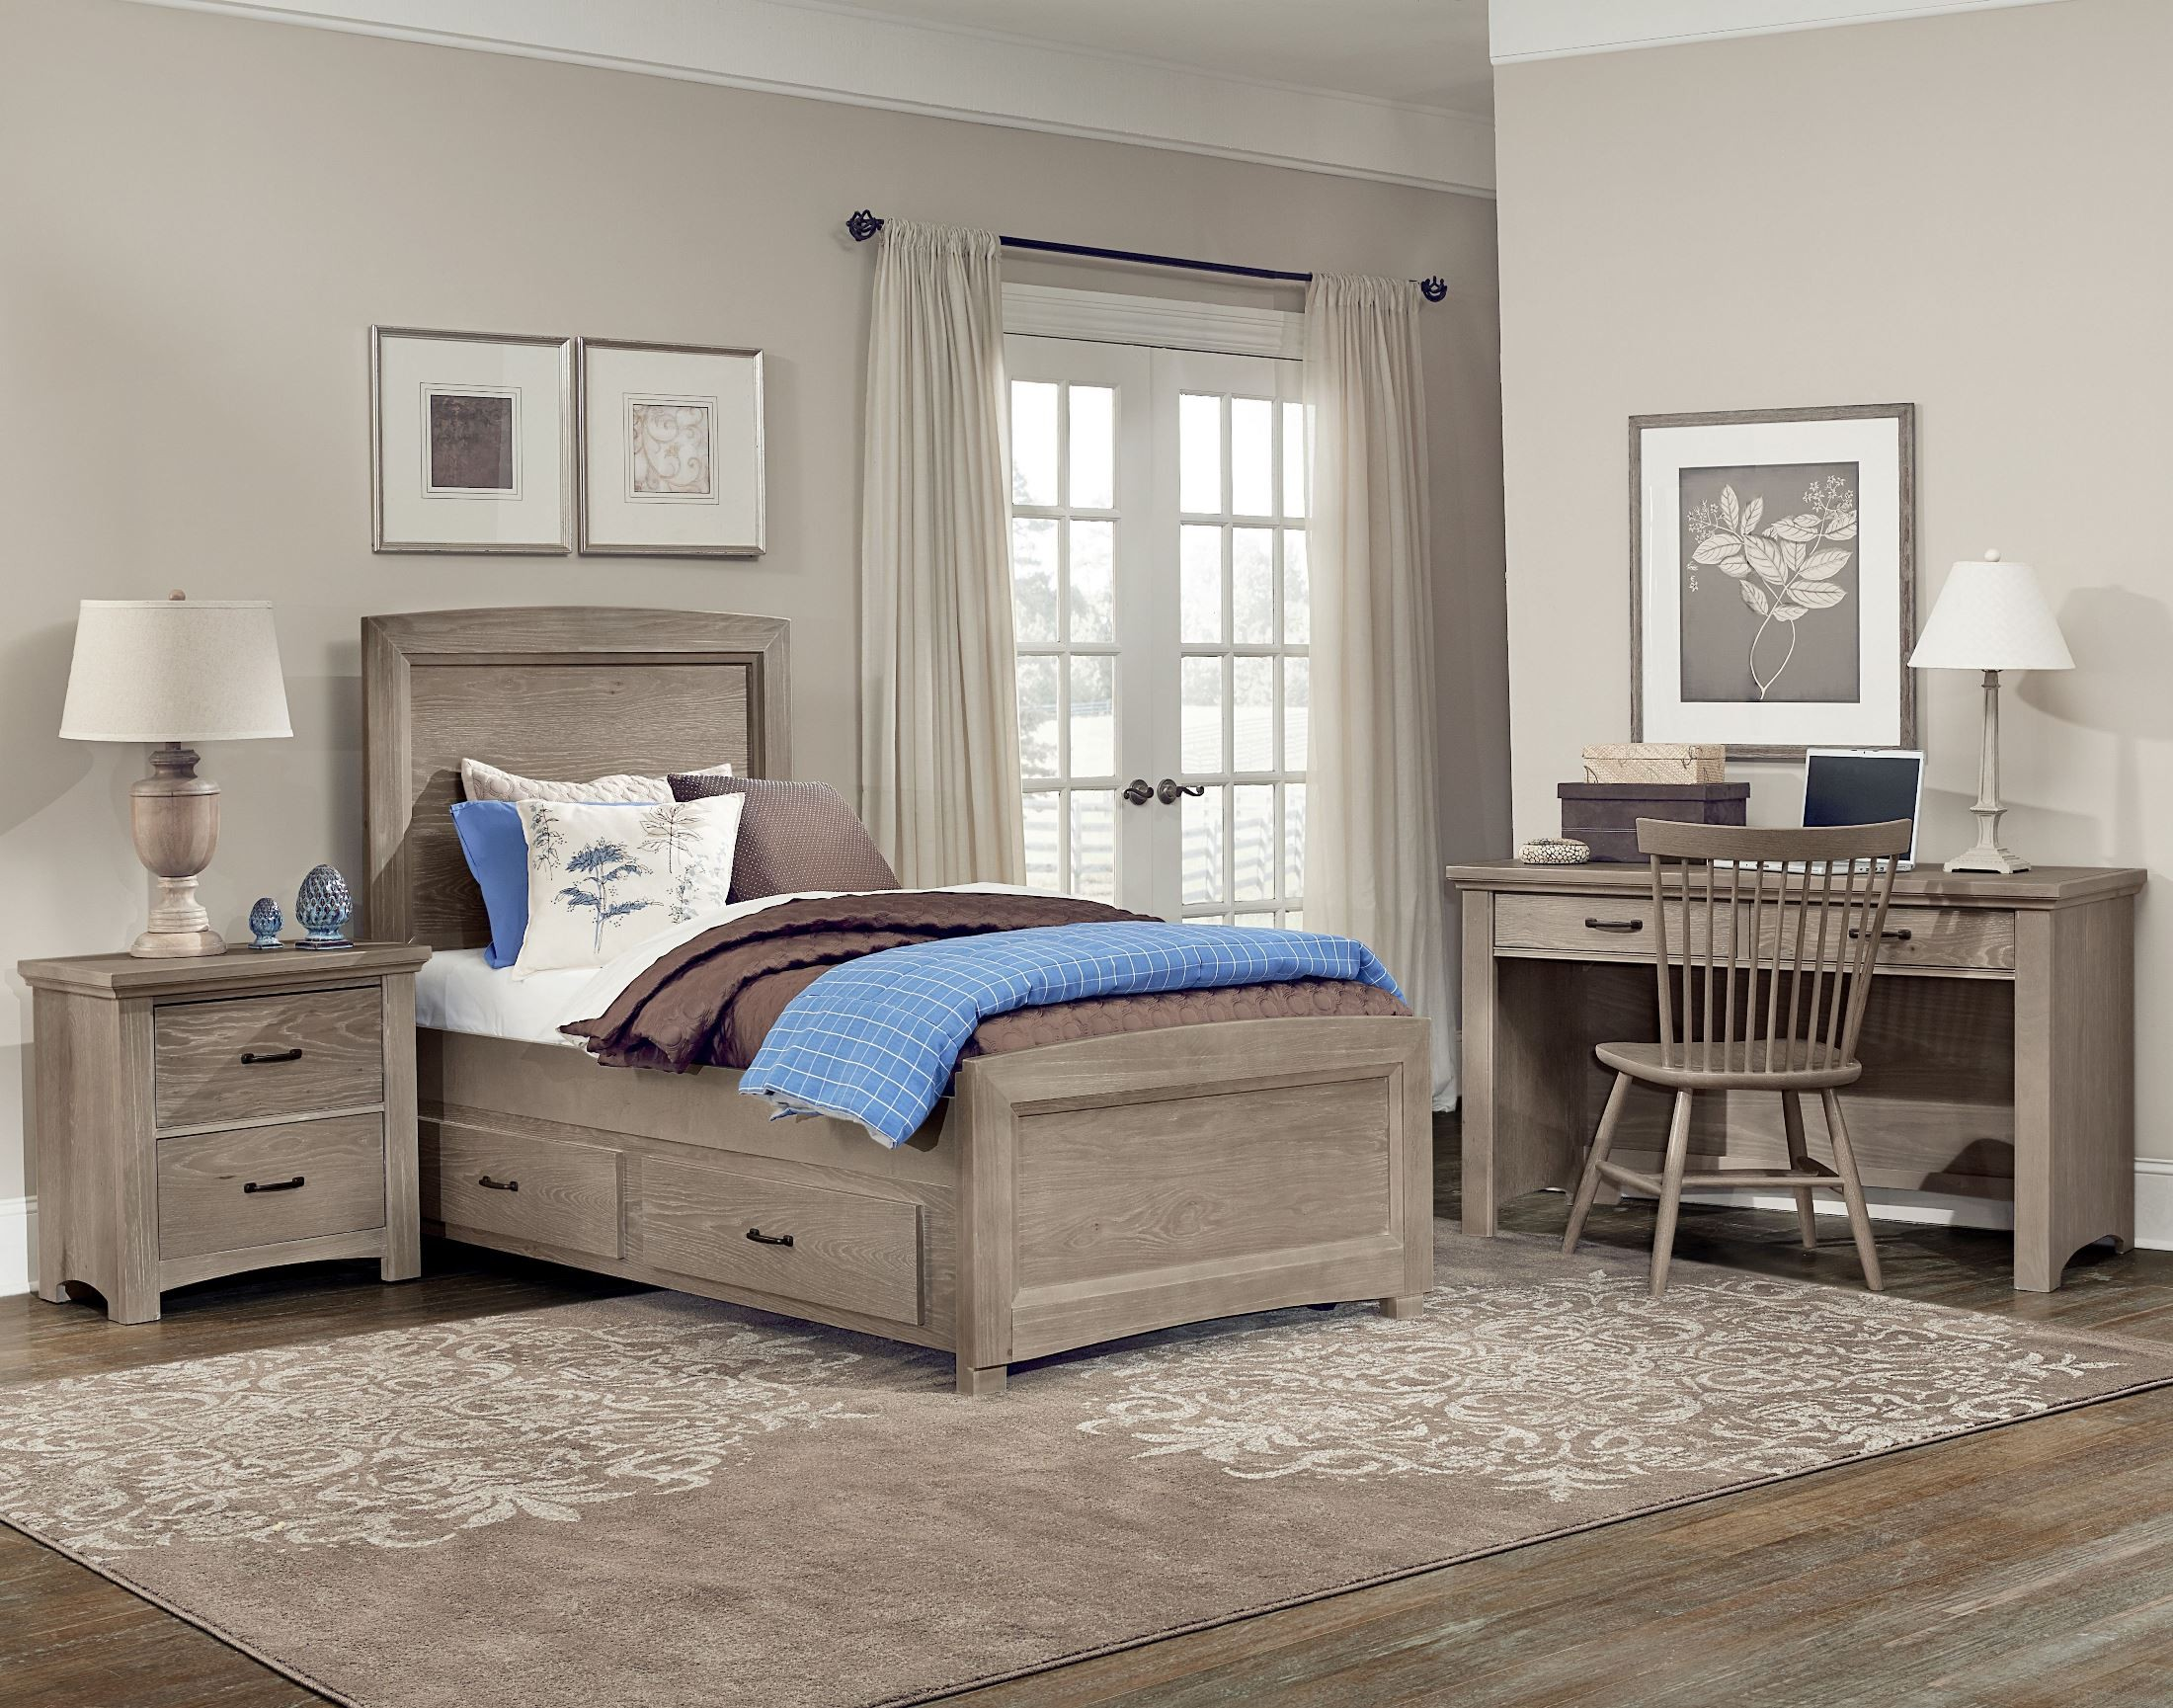 Transitions Driftwood Oak Youth One Side Storage Panel Bedroom Set From Vaughn Bassett Coleman